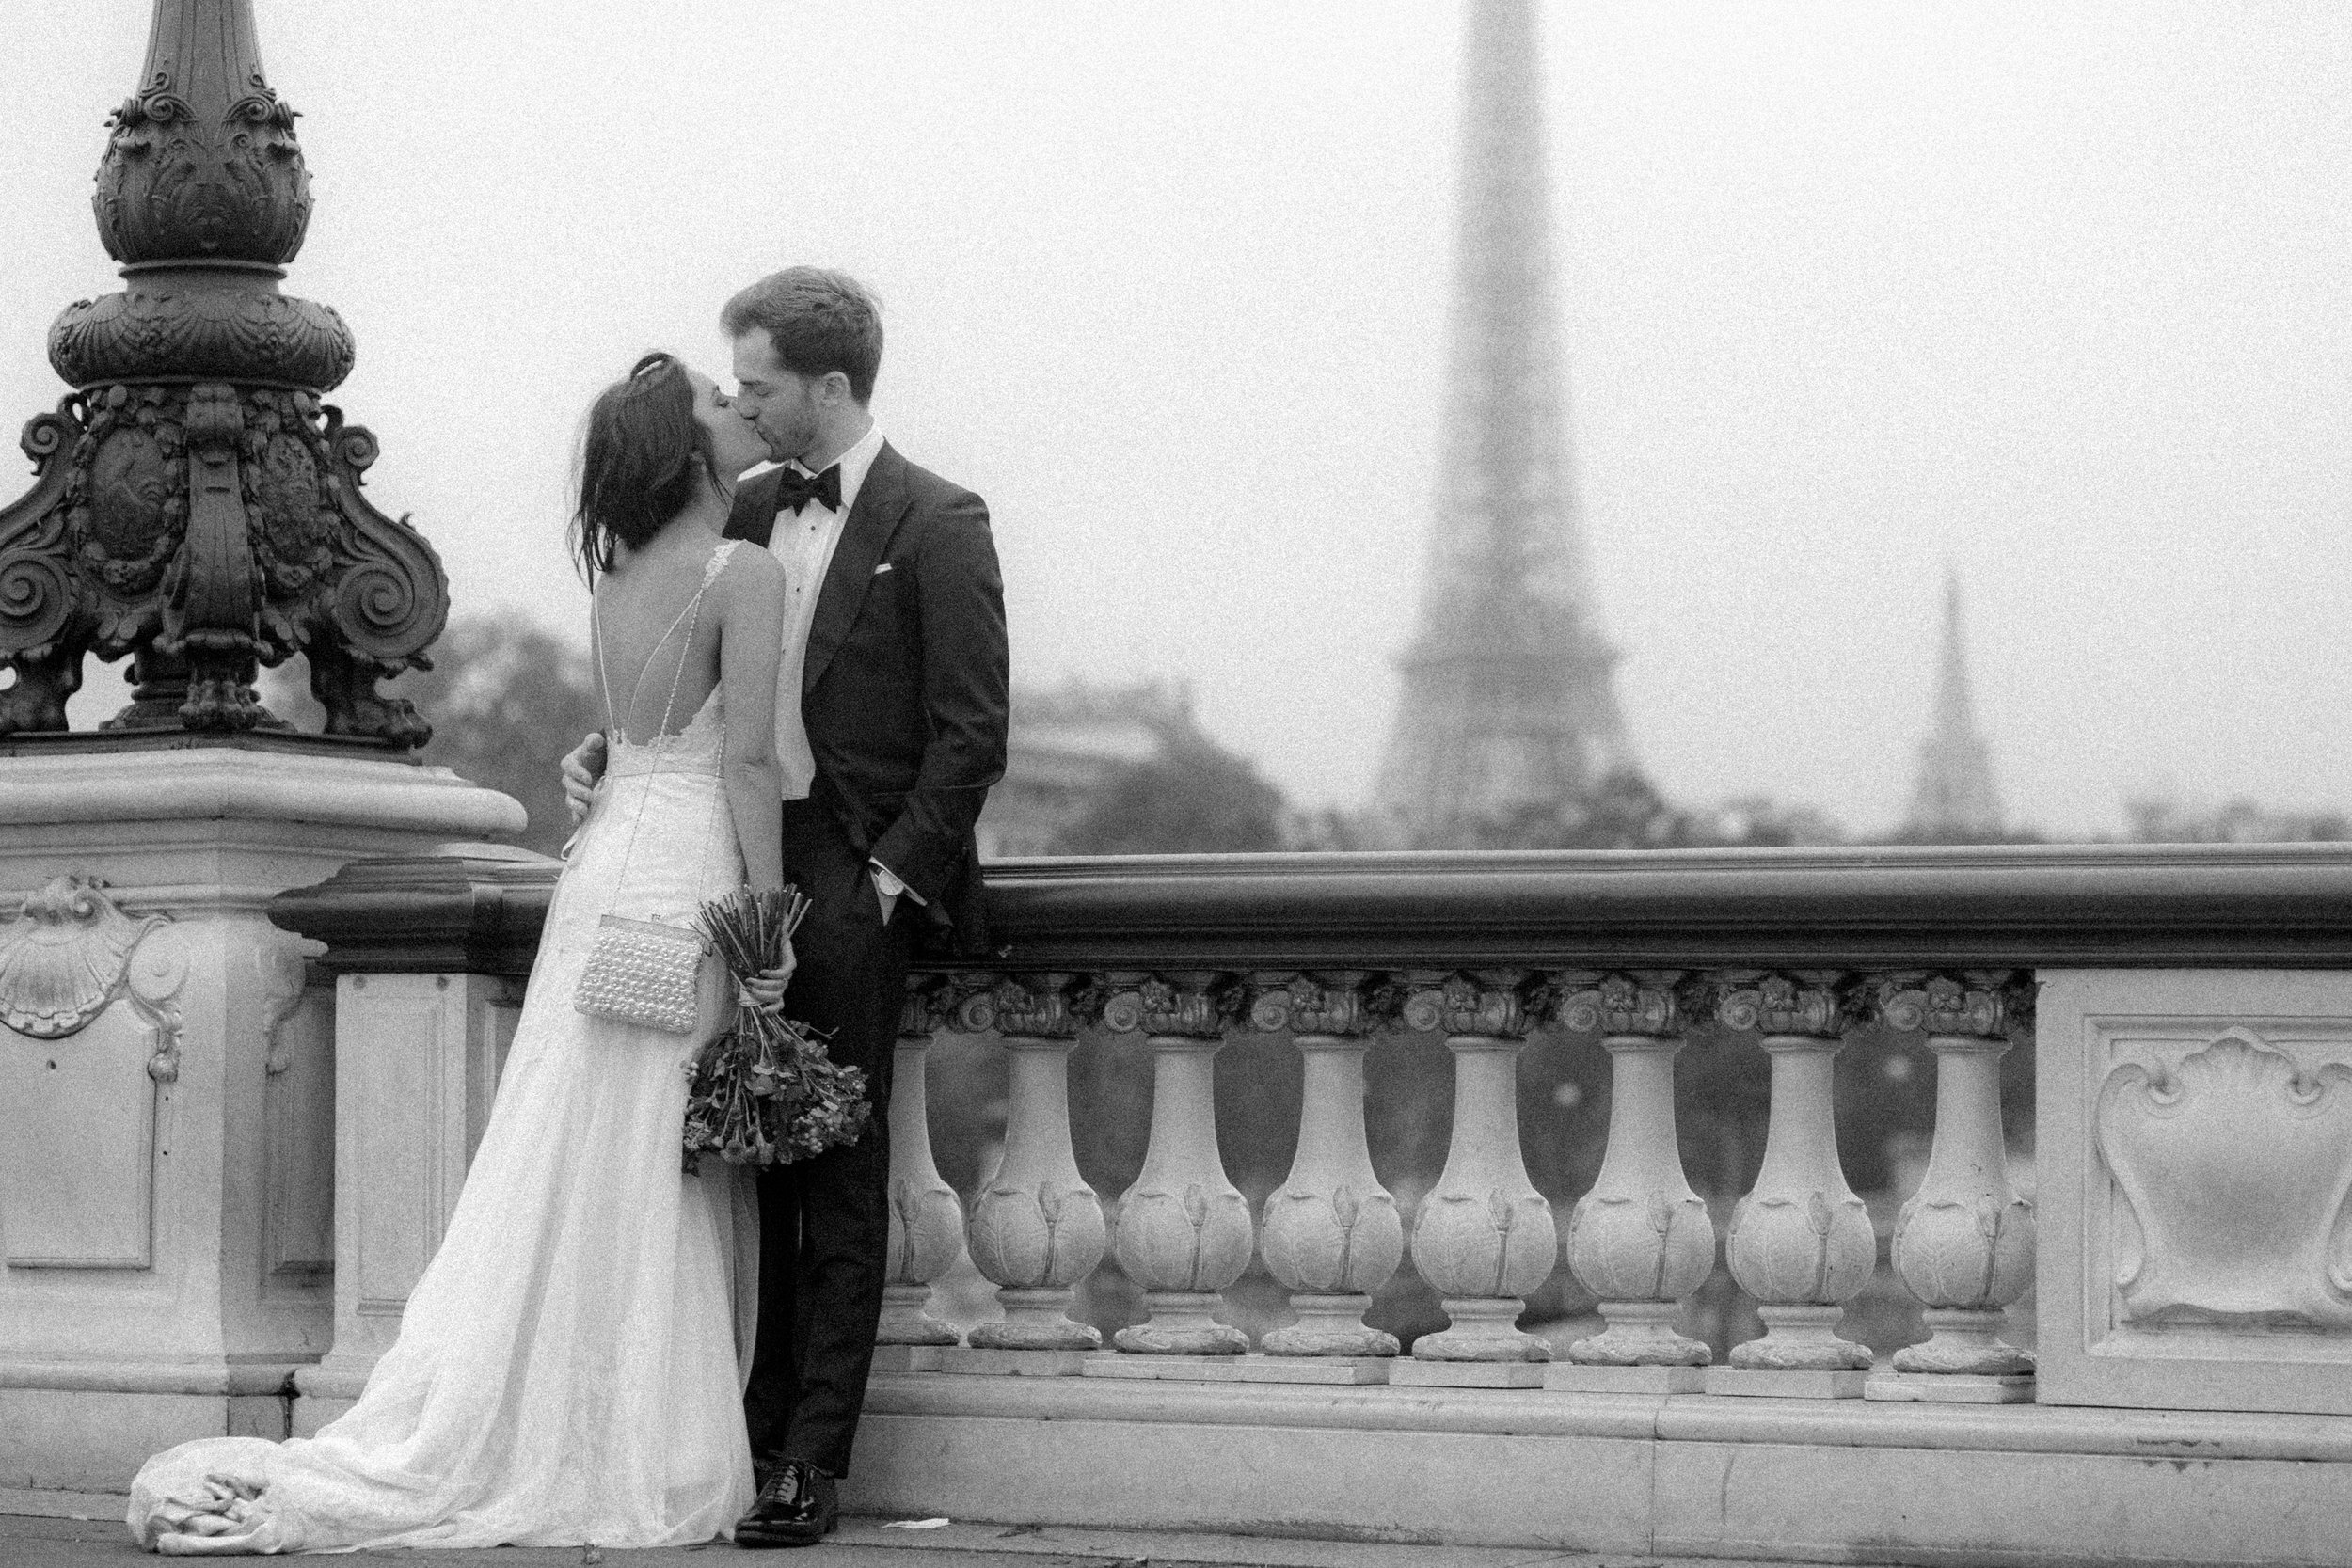 paris wedding photographer craig george hannah and mitch elopment-46.jpg